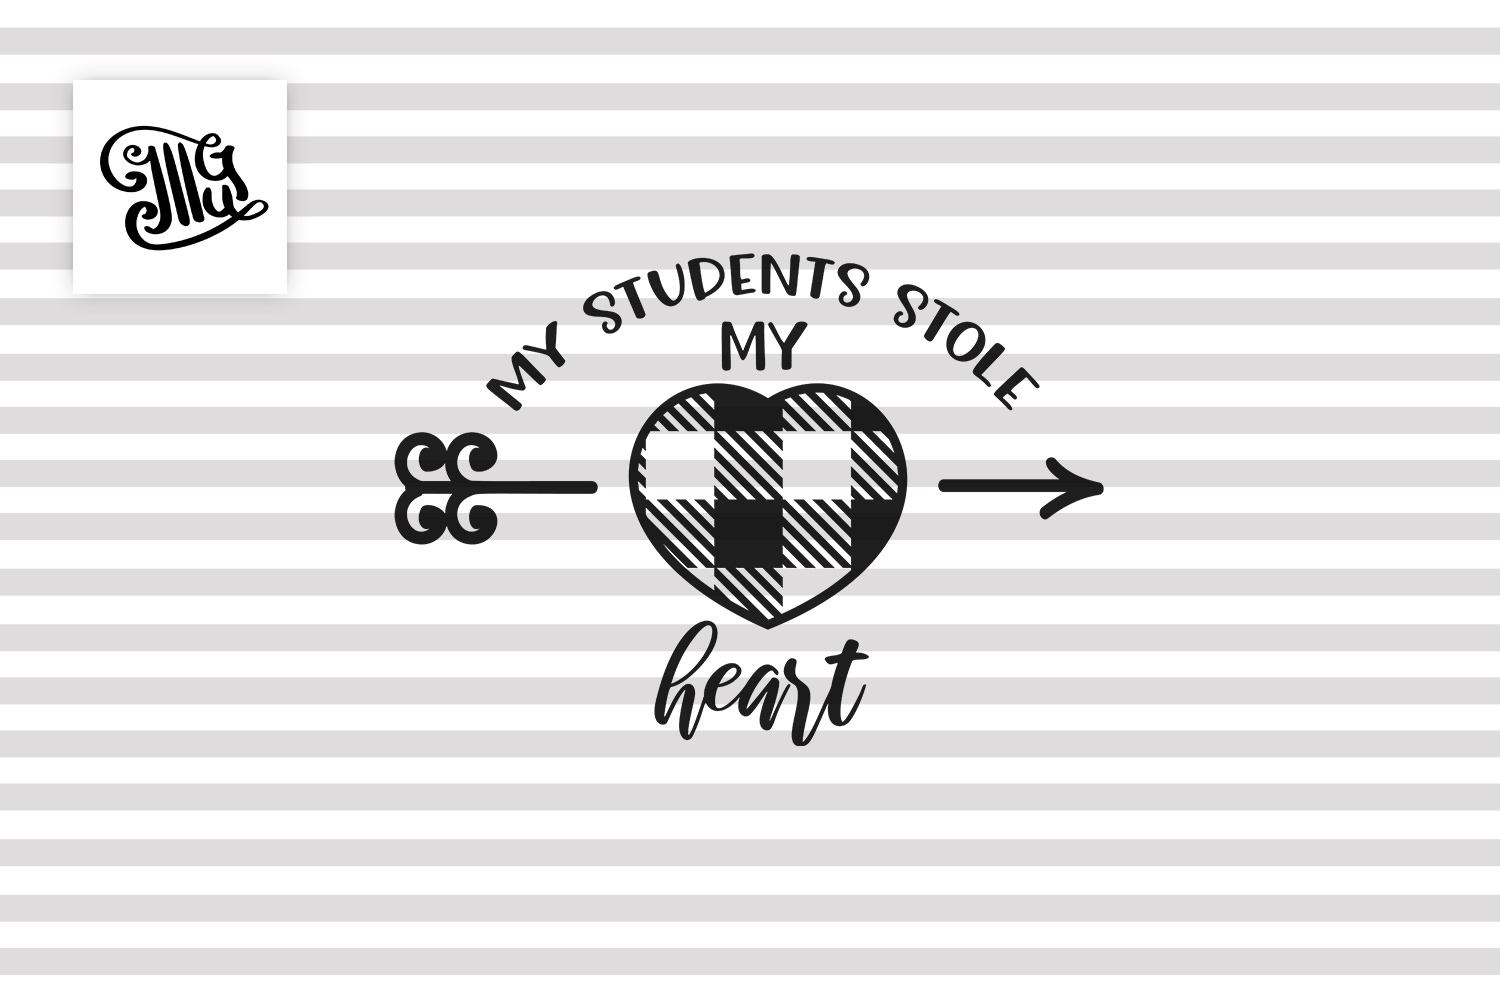 My students stole my heart svg for teacher Valentines day example image 2